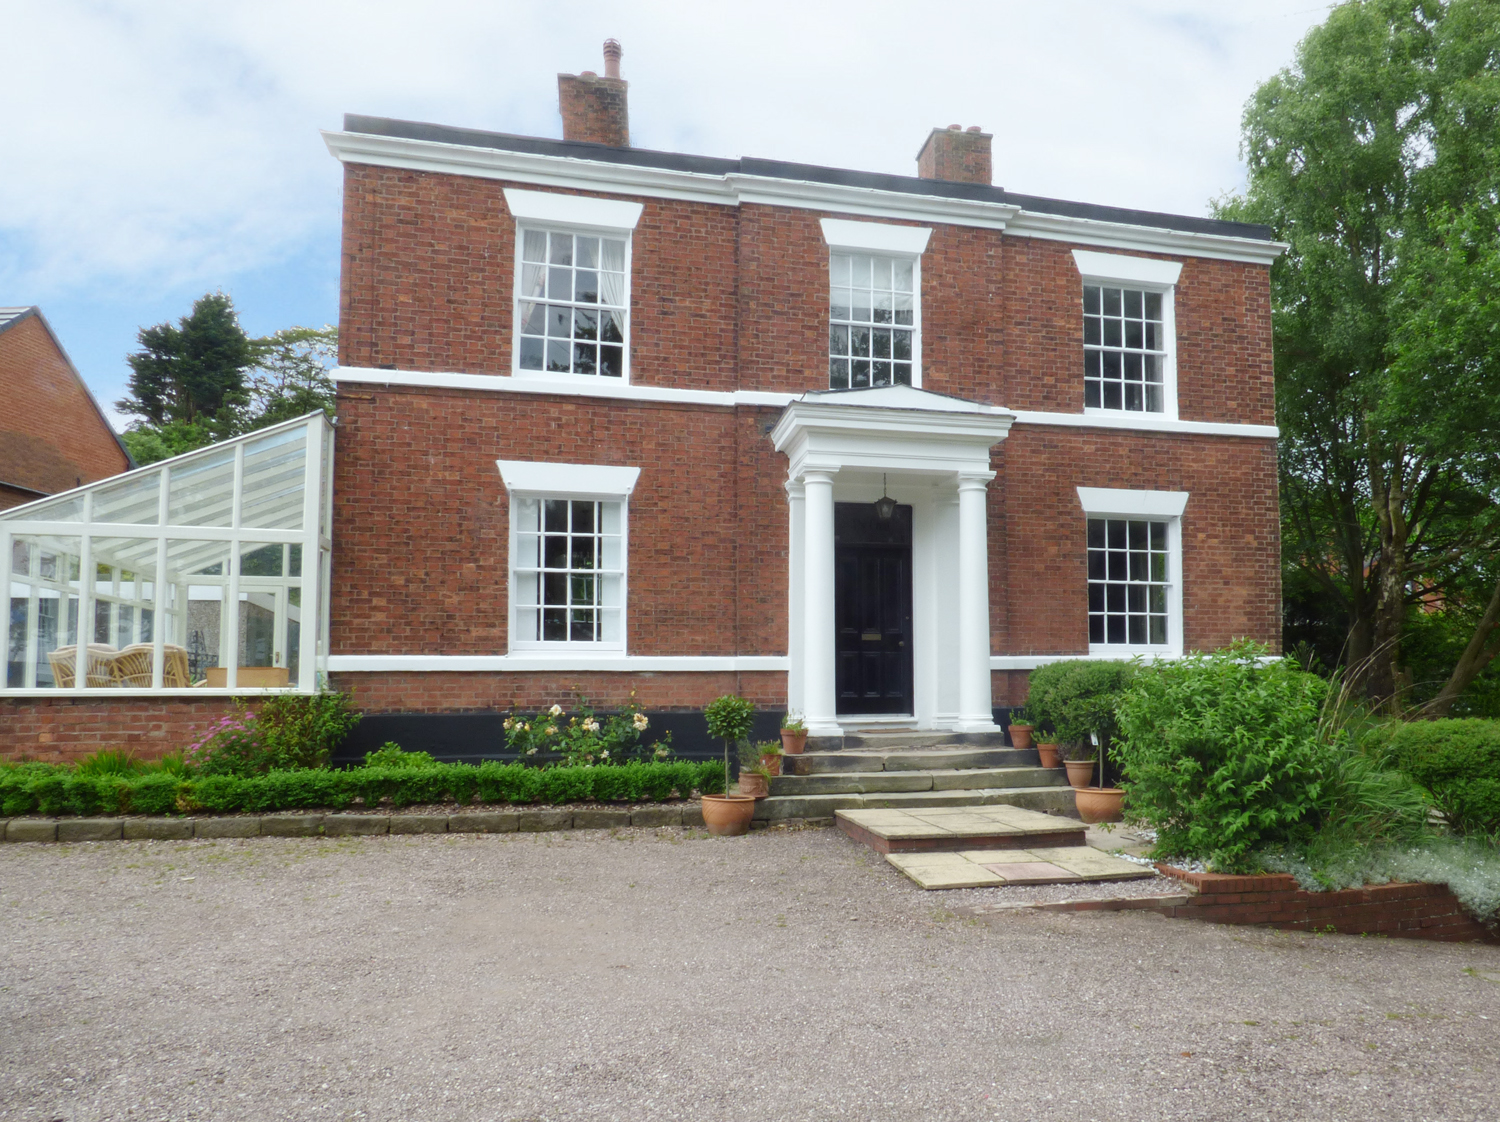 4 bedroom Cottage for rent in Cheadle